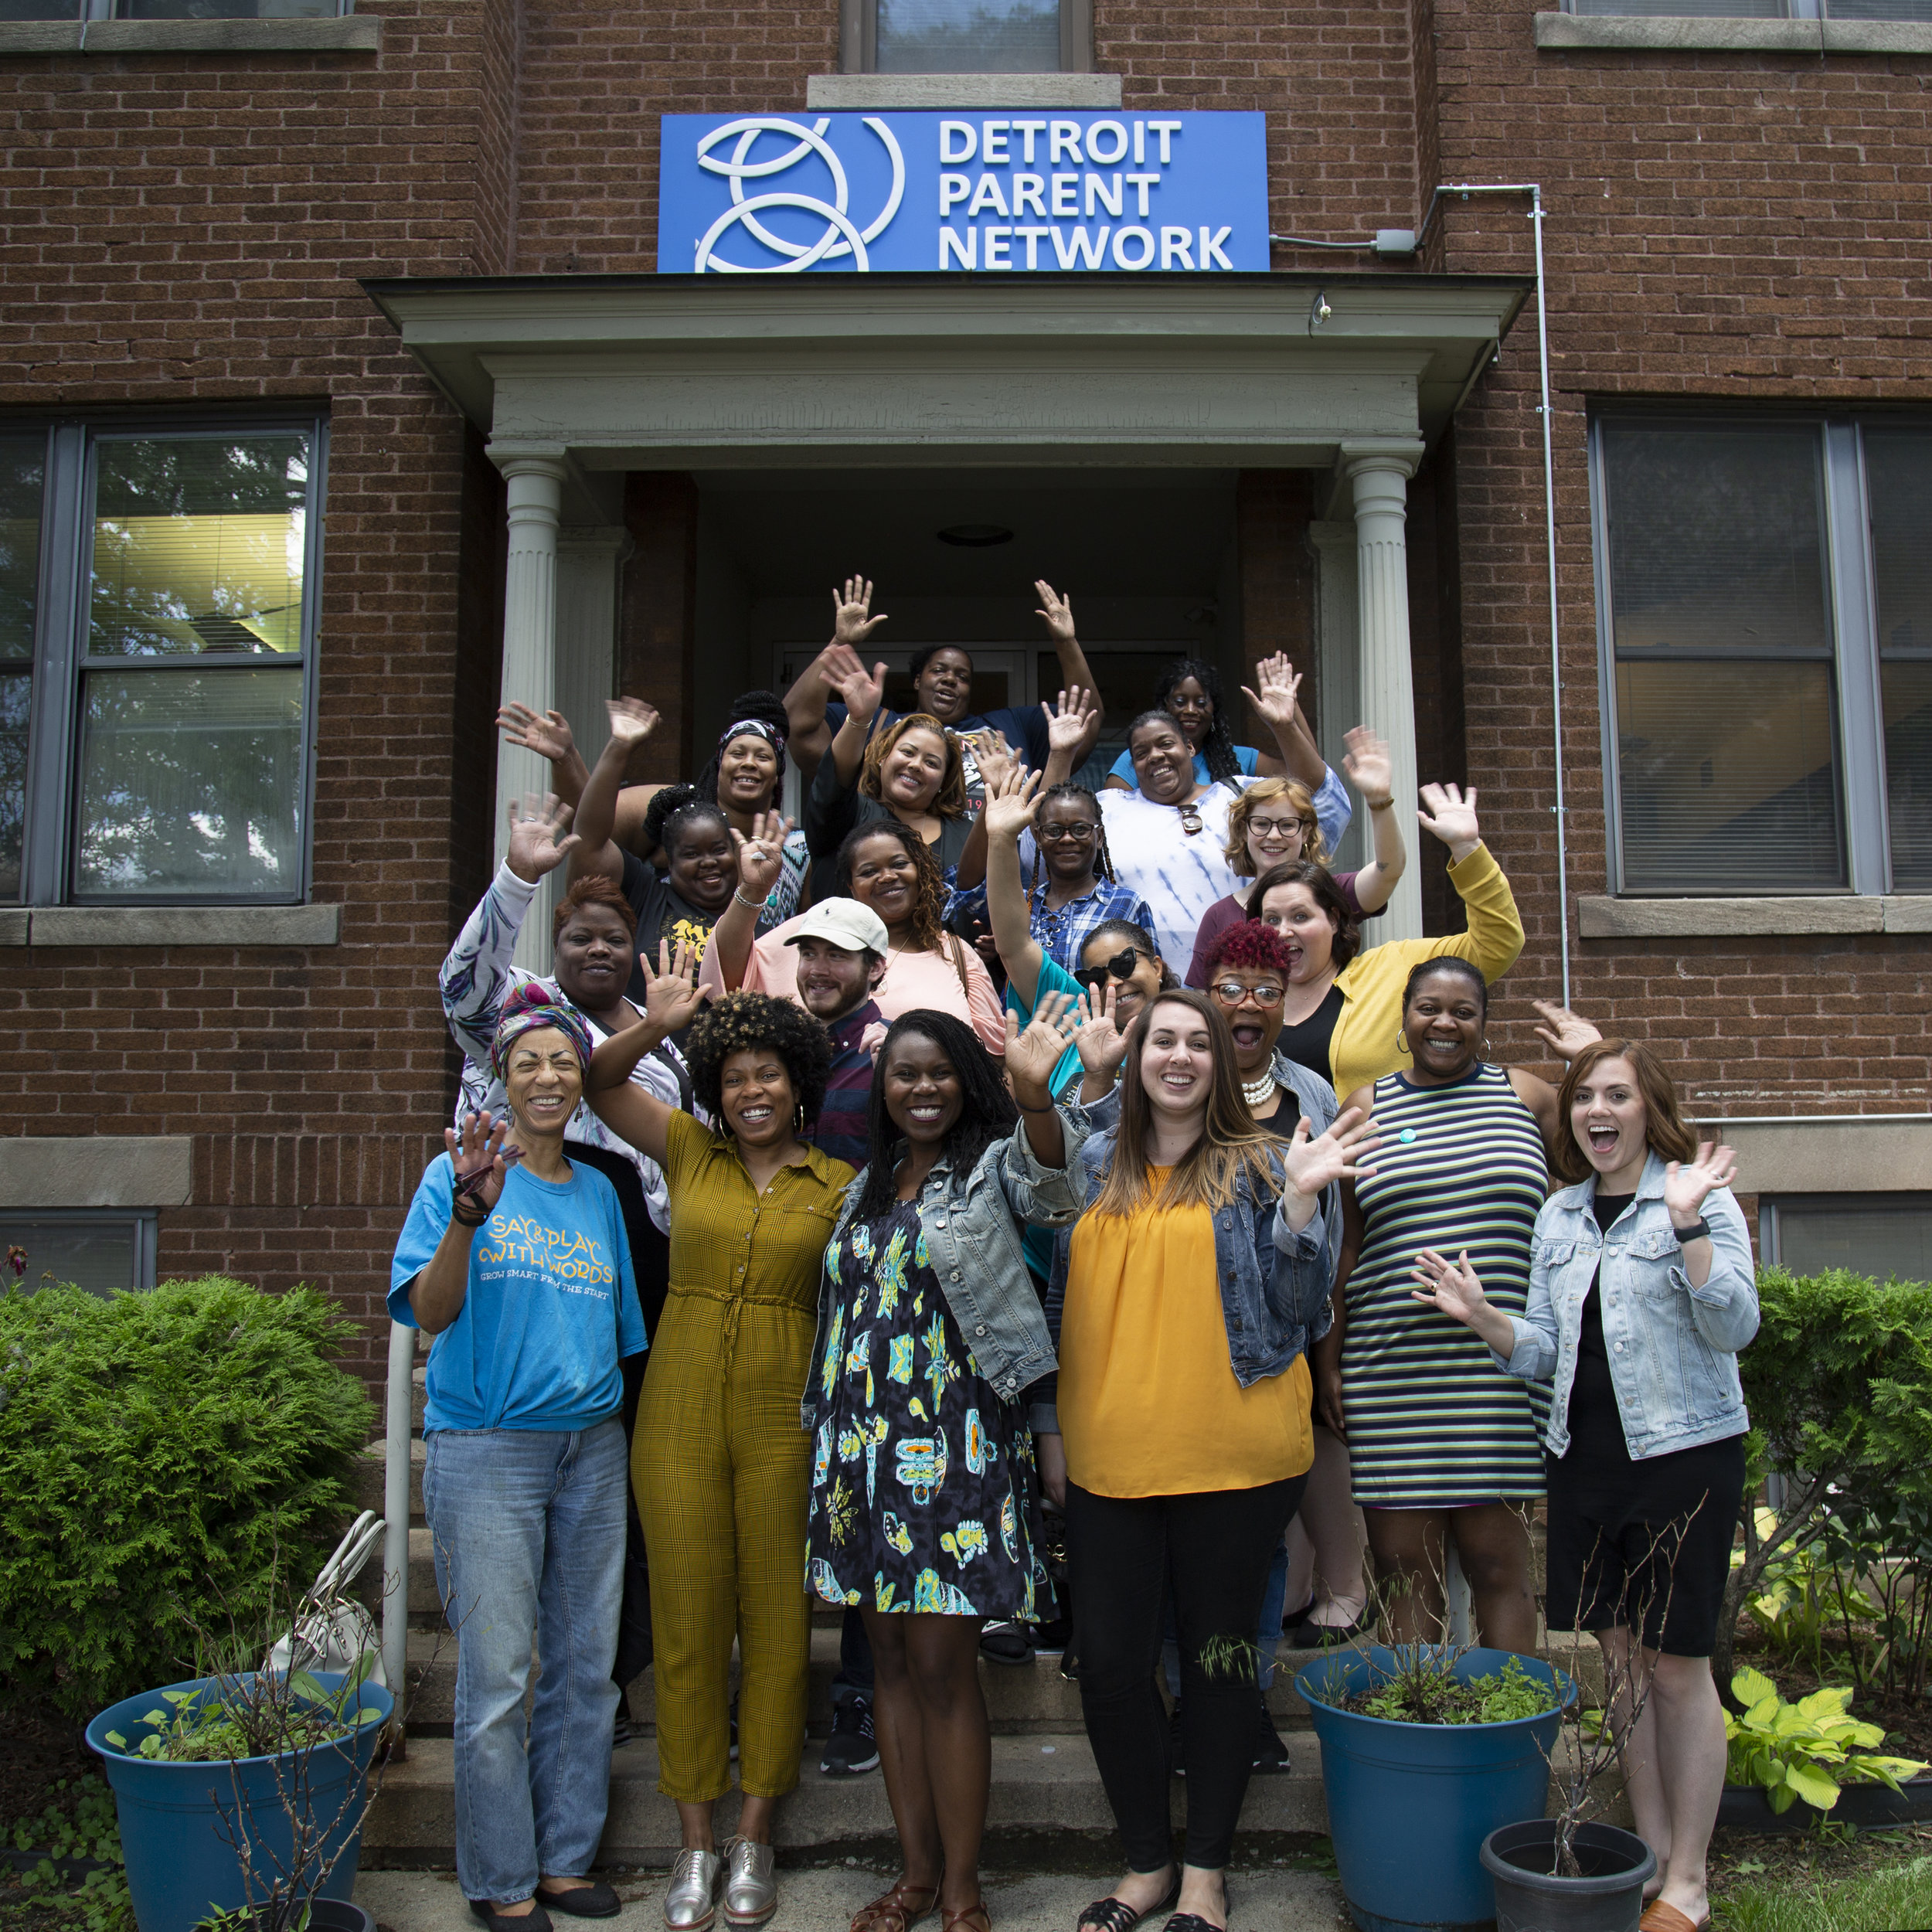 Tomorrow Builders discussed the importance of parent power and creative approaches to outreach with members of the Detroit Parents Network during the Learning Trip to Detroit this June.